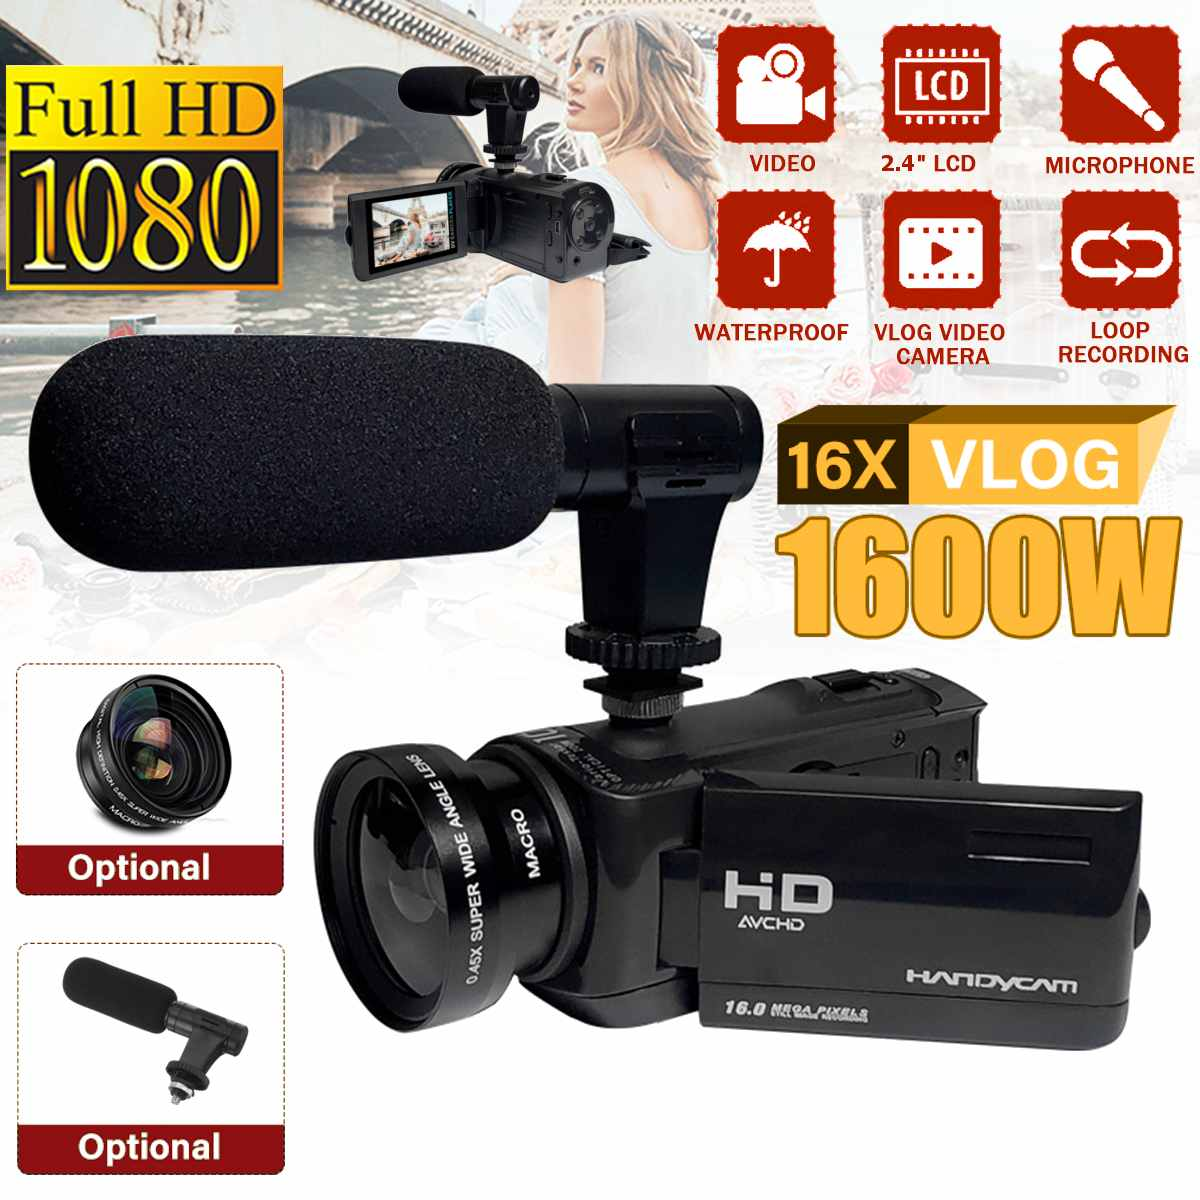 Modest Professional 1080p Hd Camcorder Video Camera Night Vision 2.4 In Lcd Screen Camera 16x Digital Zoom Camera With Microphone